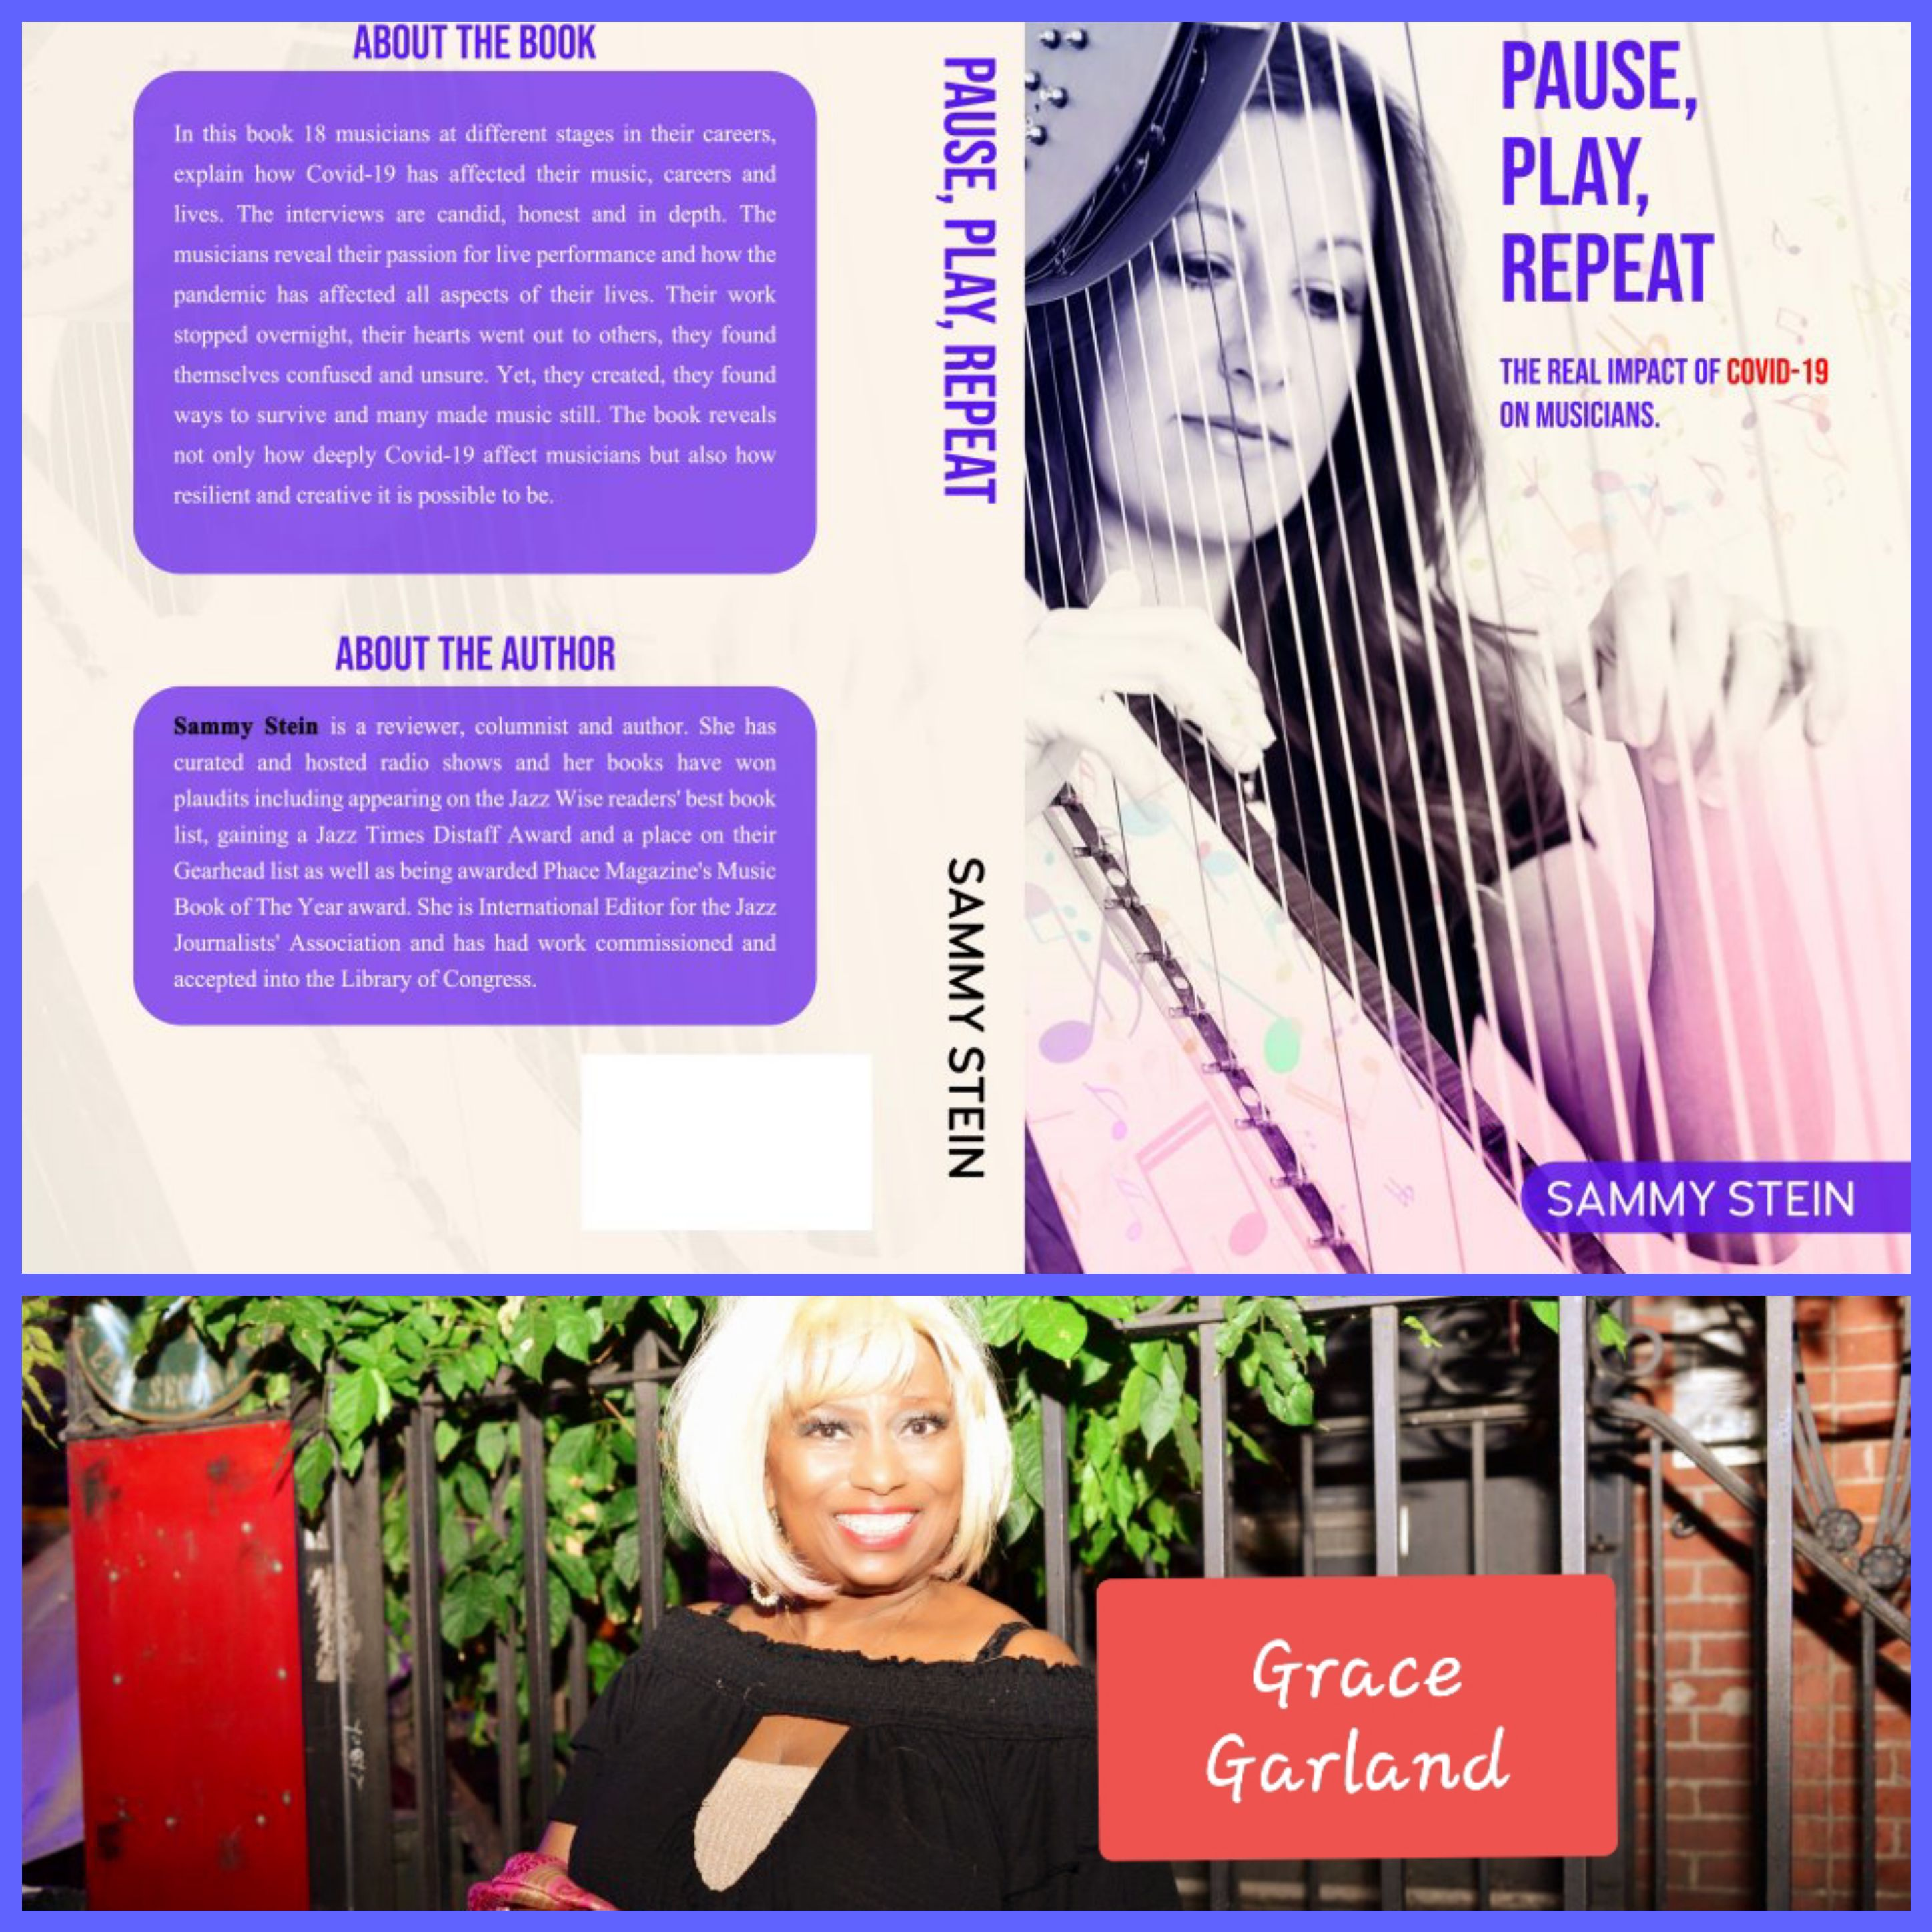 Grace Garland Interview in PAUSE PLAY REPEAT